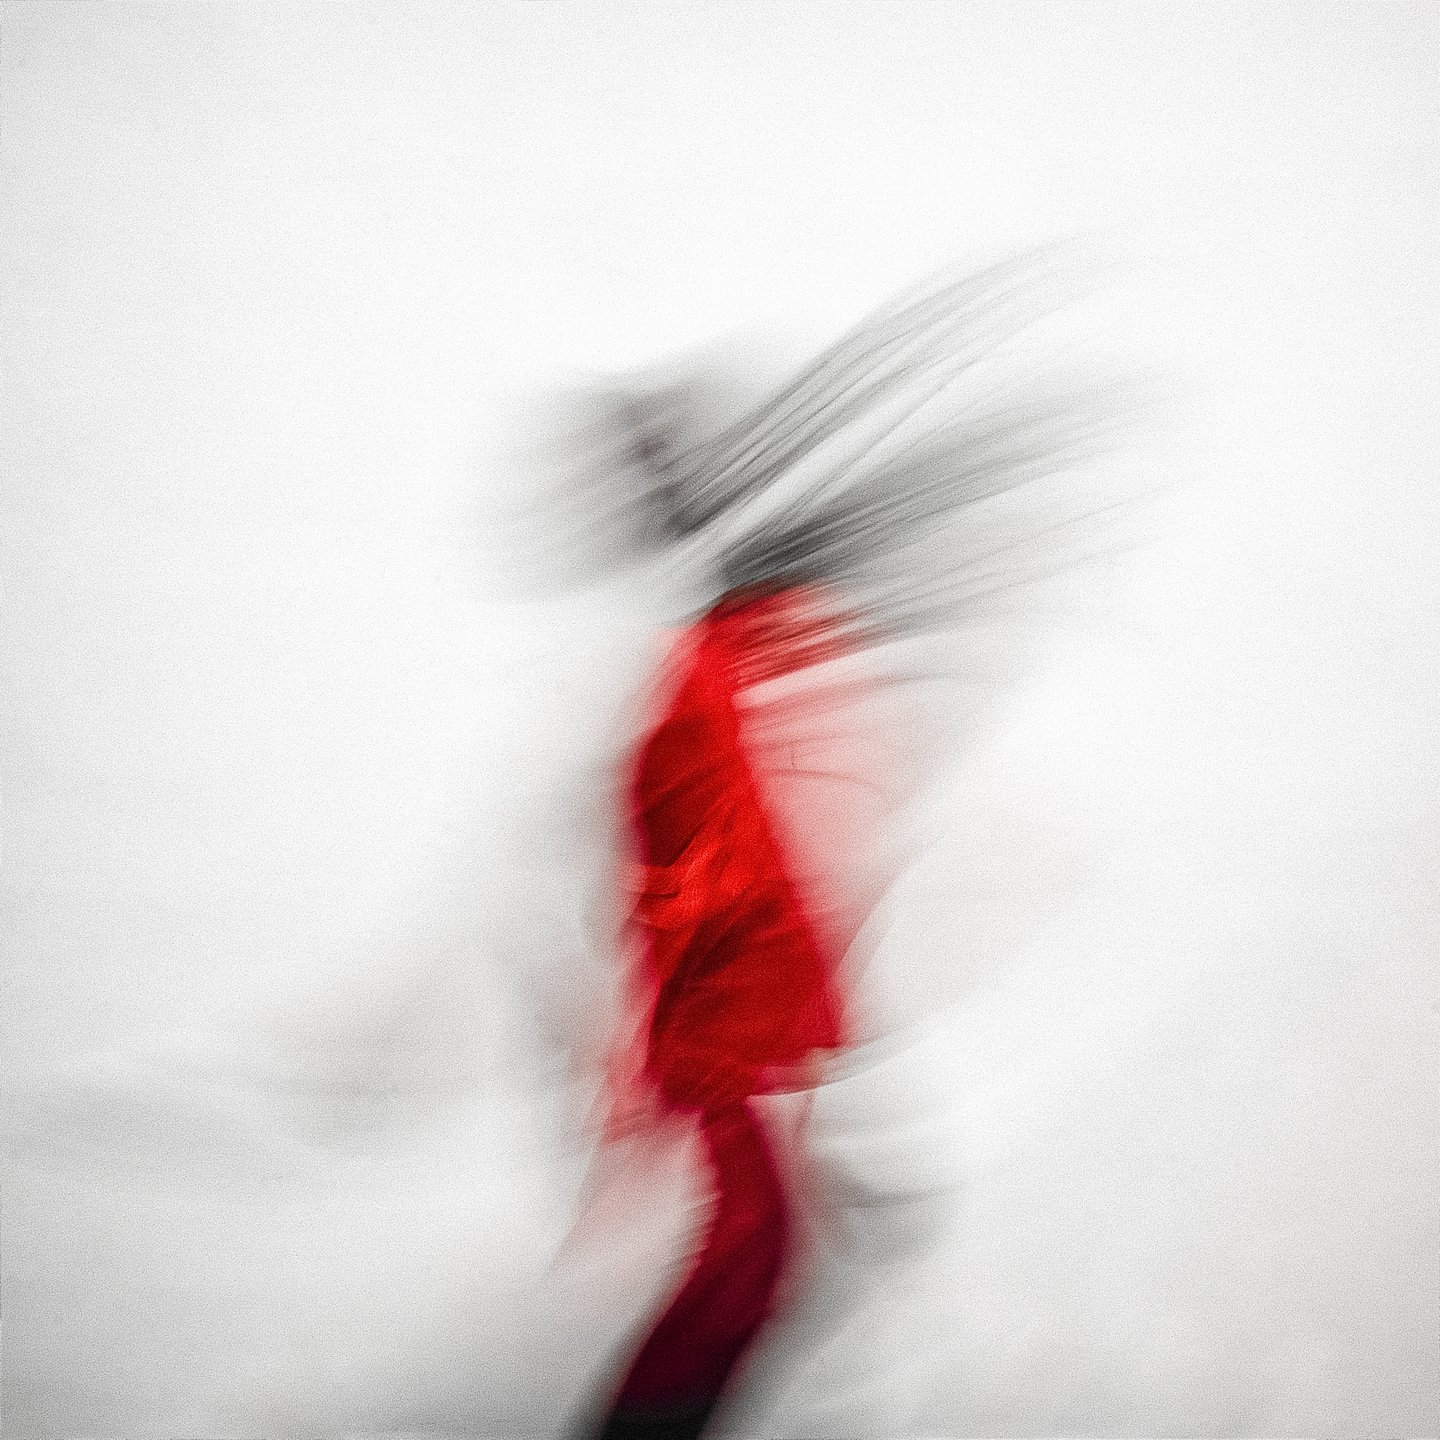 alexandru_crisan_the disappearance of ms. D.jpg